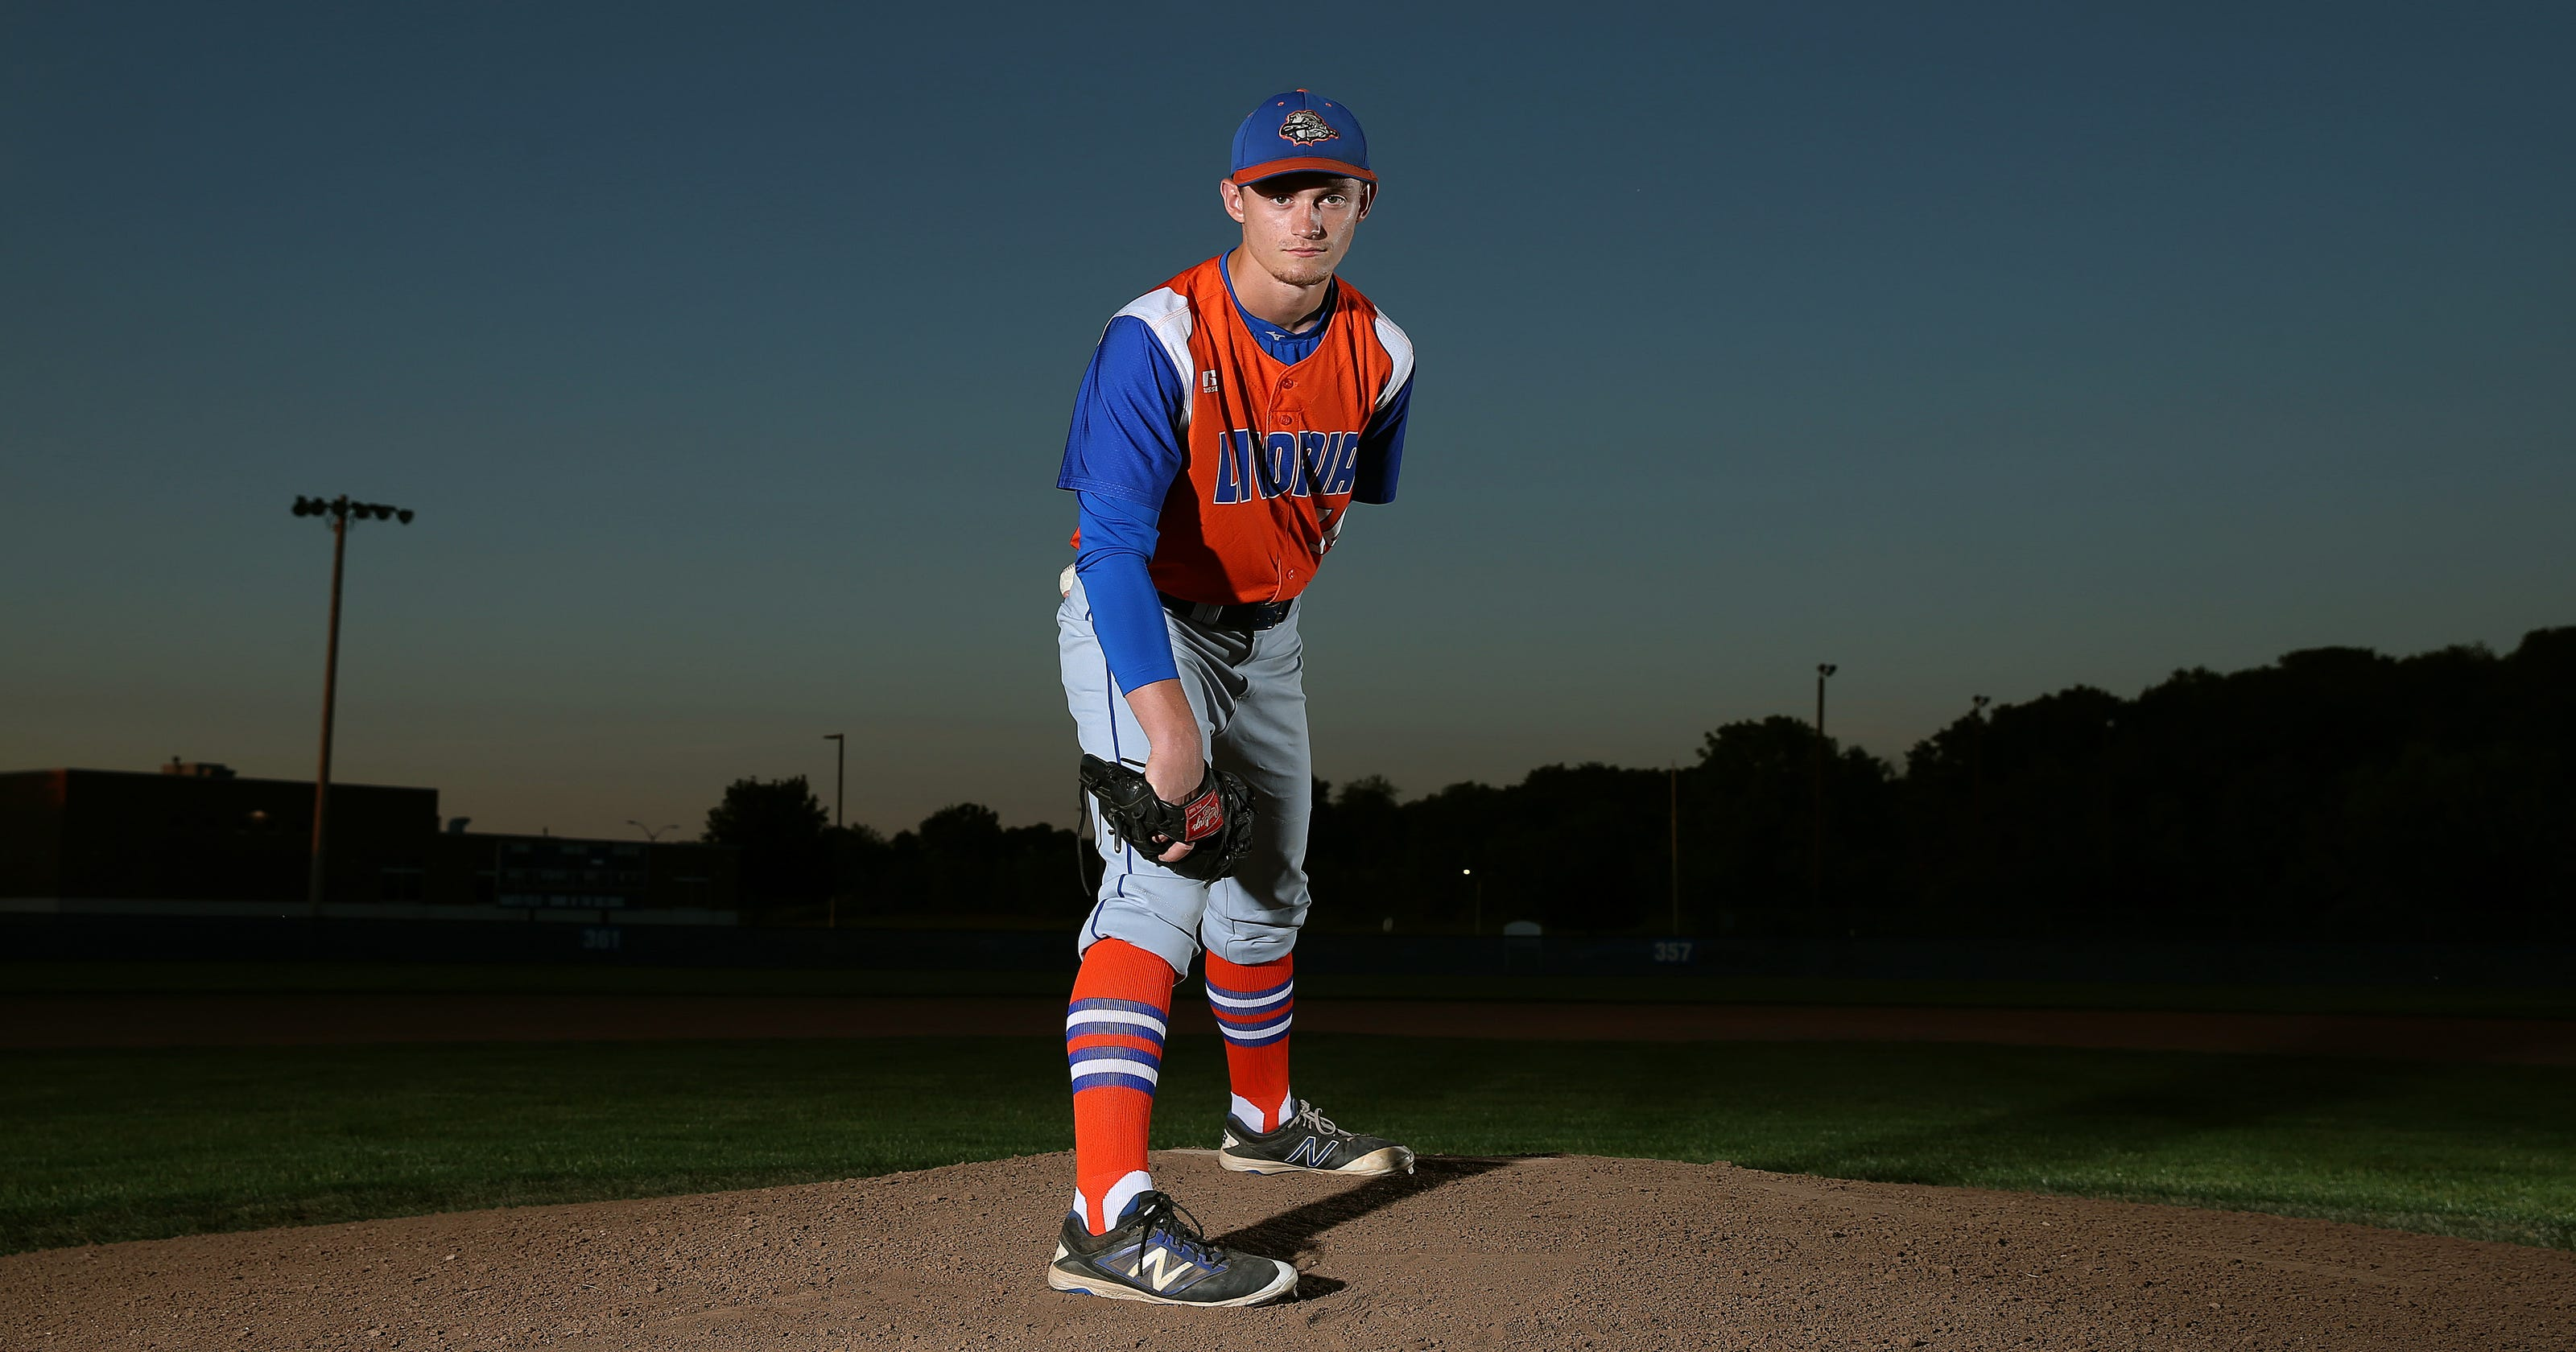 VanScoter among 9 first team all-state baseball players in ...